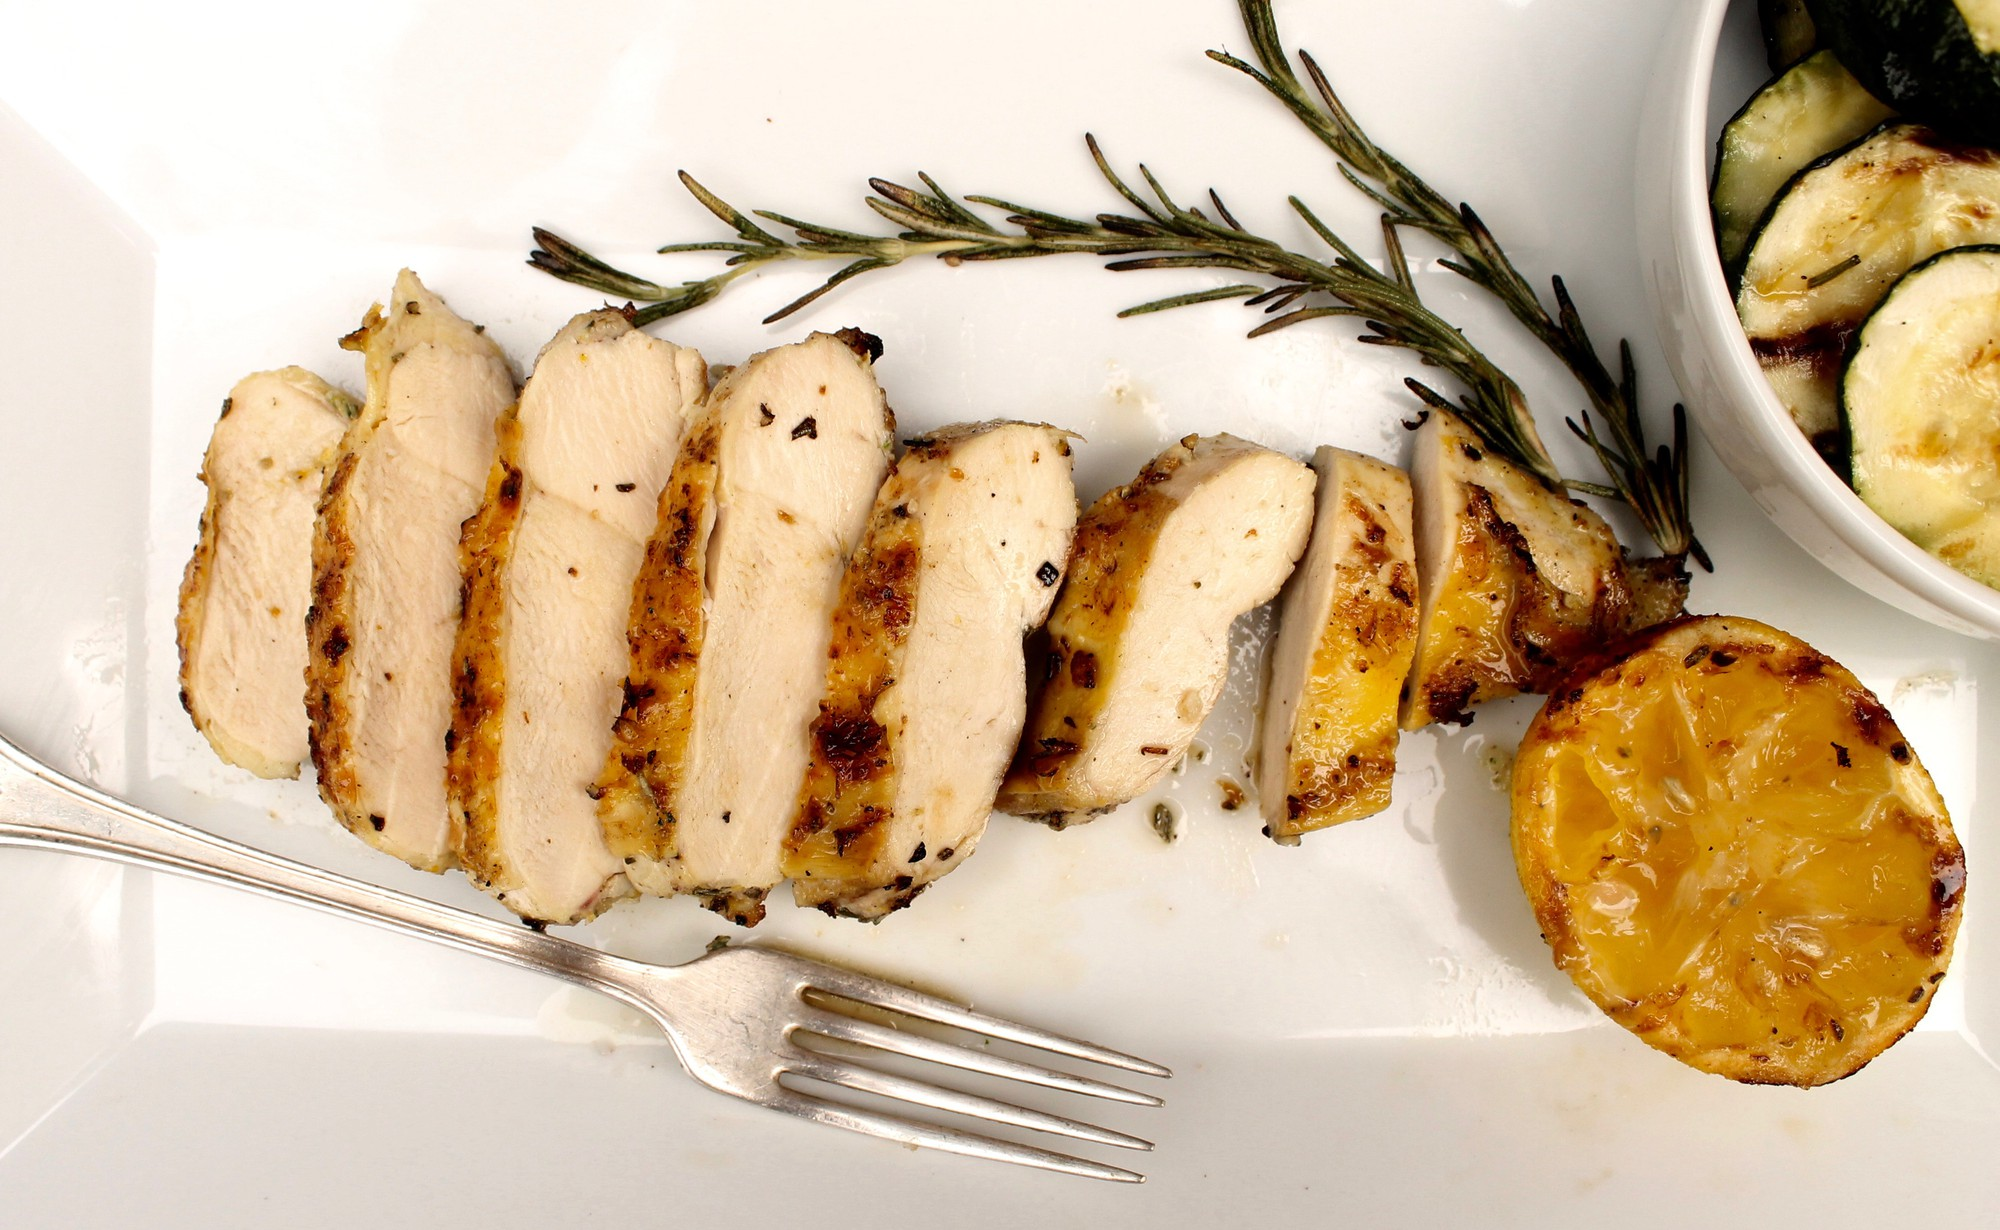 lemon-rosemary_grilled_chicken_-_grace_parisi_6d45fffd0fea140cbfafd84880ff4292